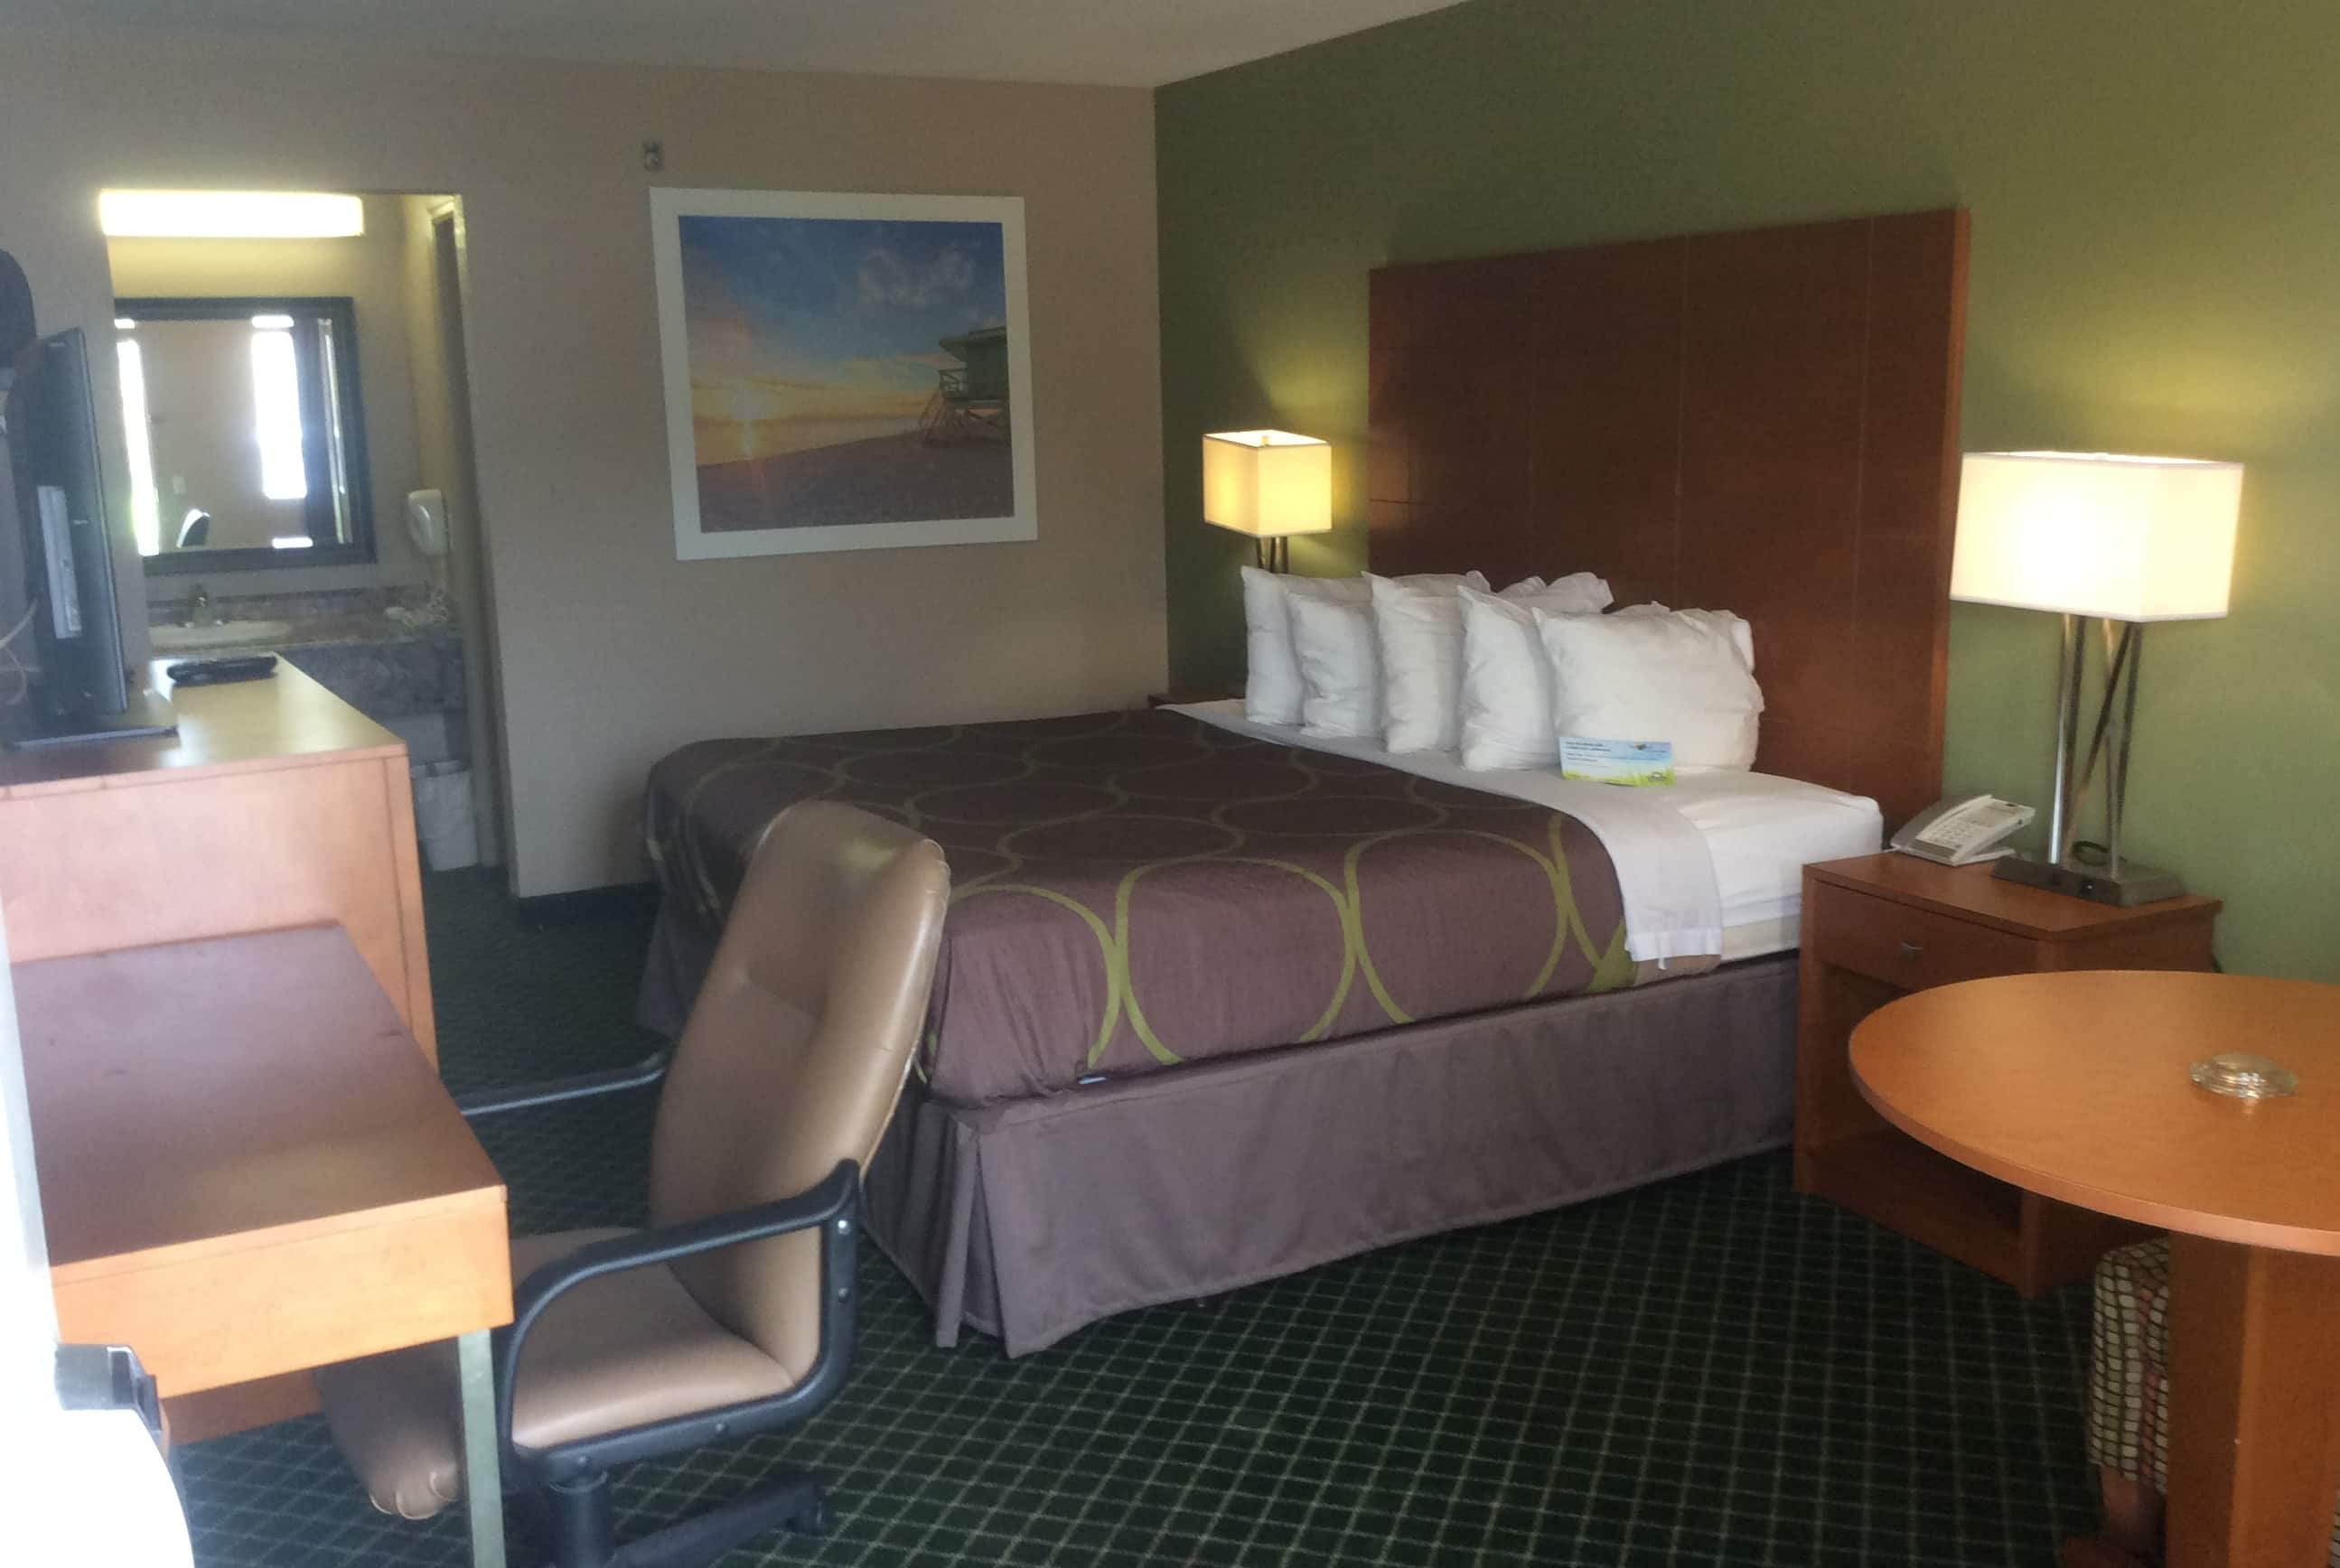 Guest room at the Days Inn by Wyndham Donalsonville in Donalsonville, Georgia